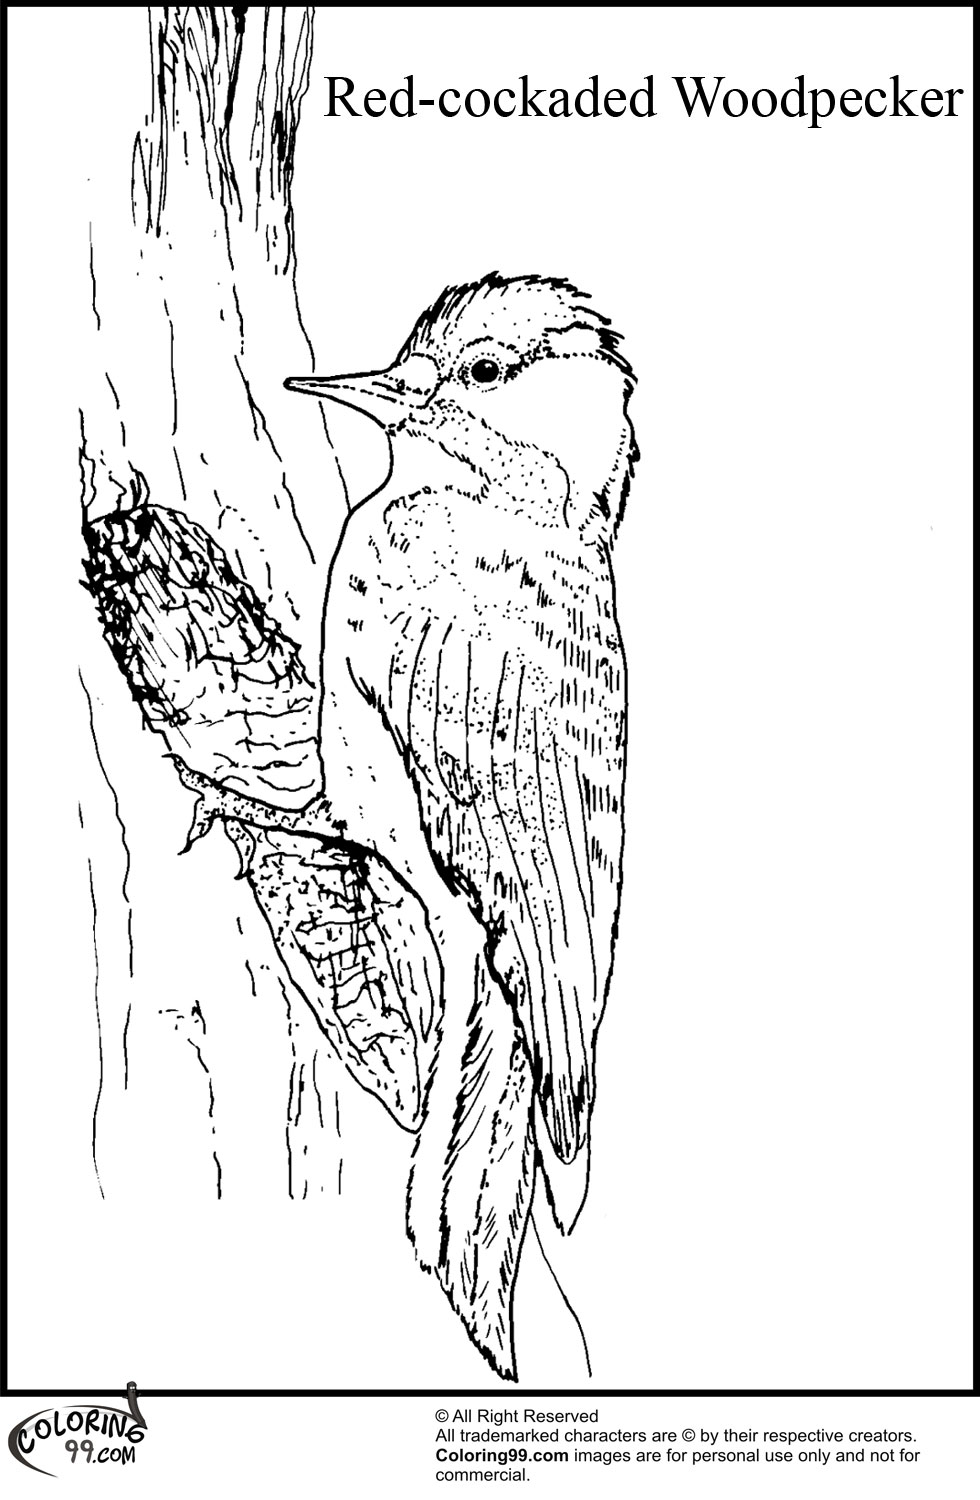 woodpecker coloring page woodpecker coloring page animals town animals color woodpecker coloring page